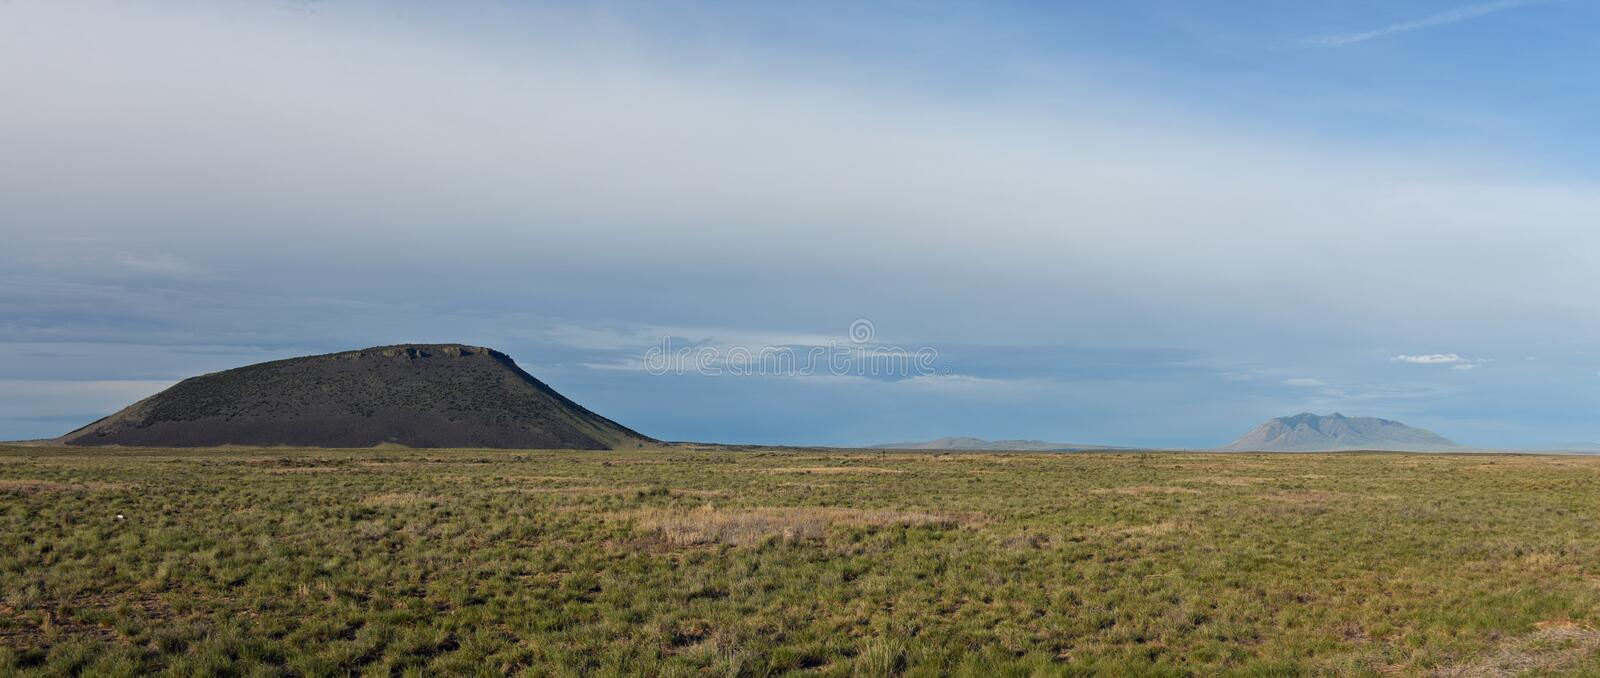 Three Buttes, Idaho stock photos